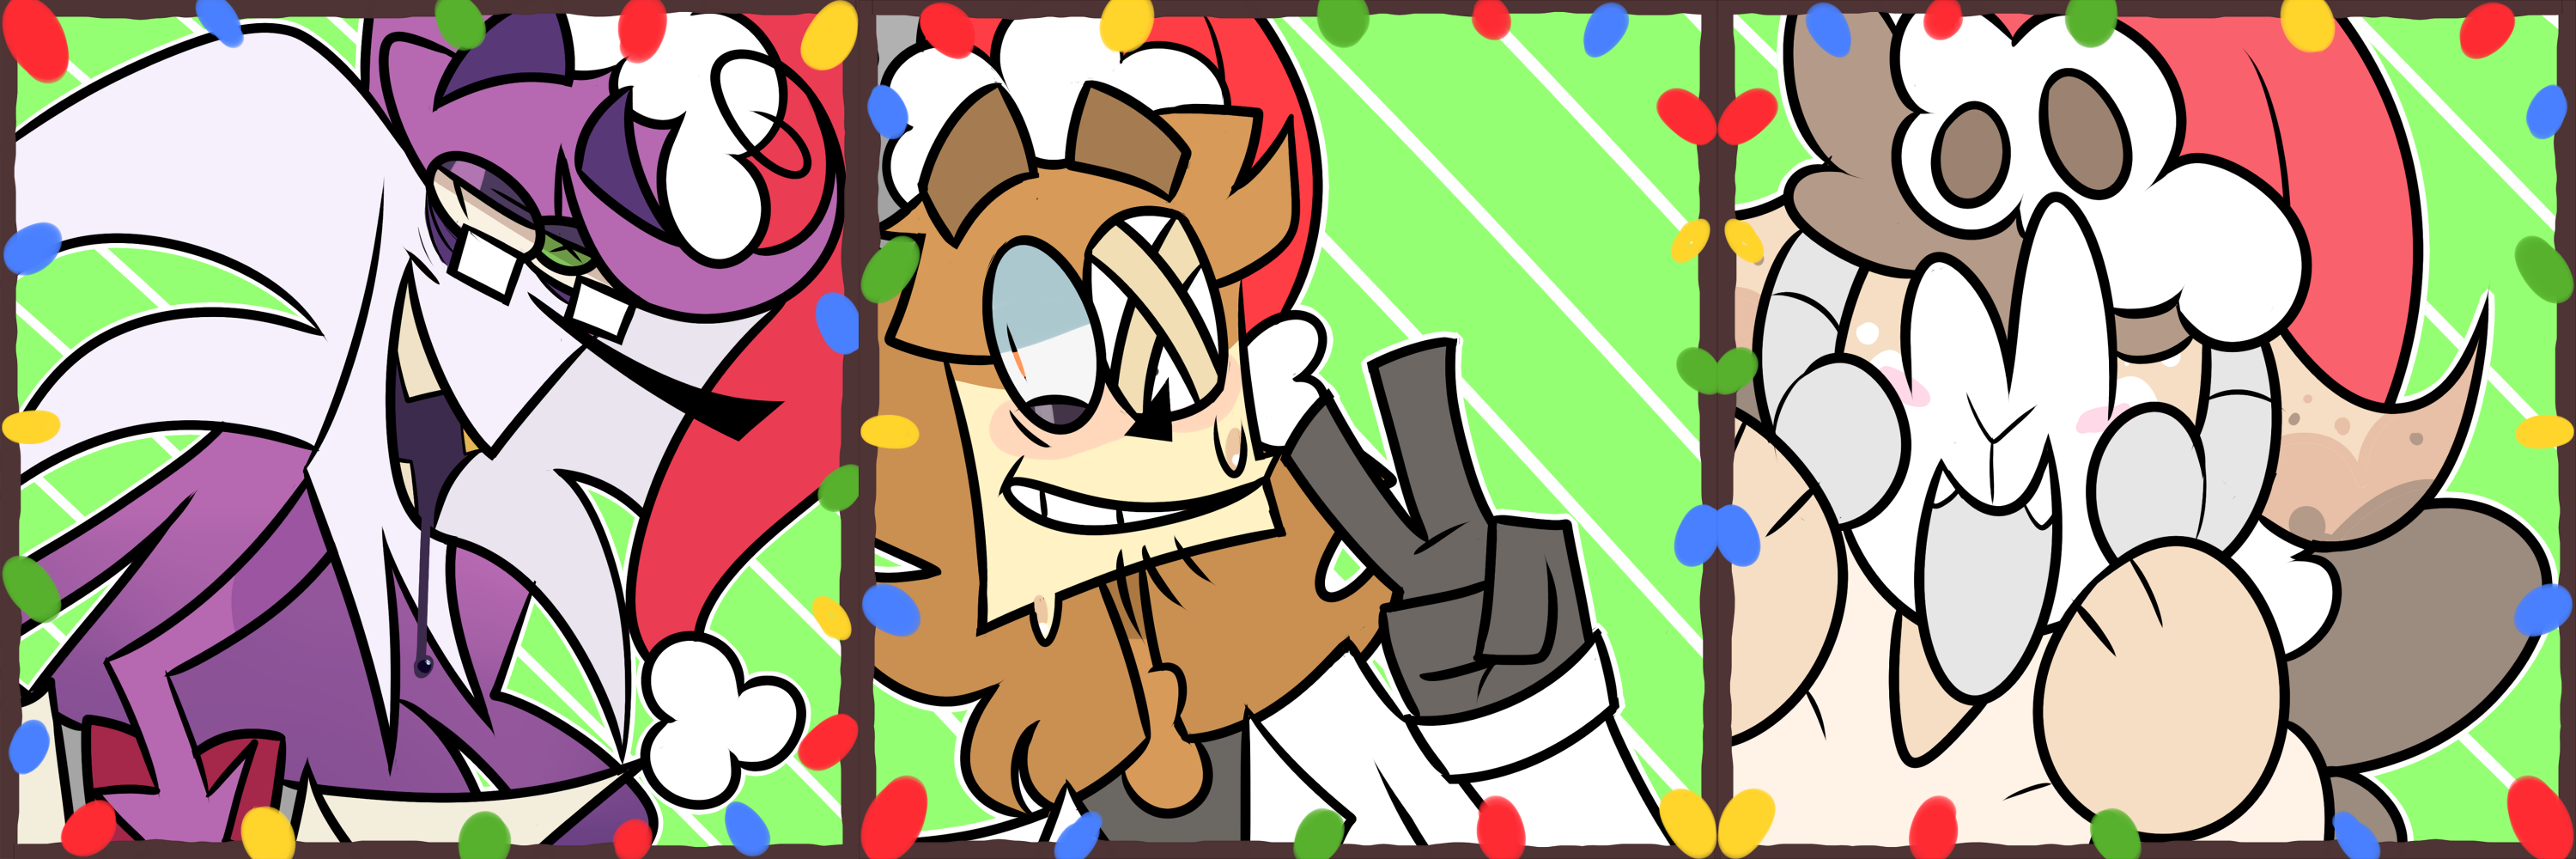 RE-NIGHTMARE CHRISTMAS FREE TO USE ICONS by Sleepykinq